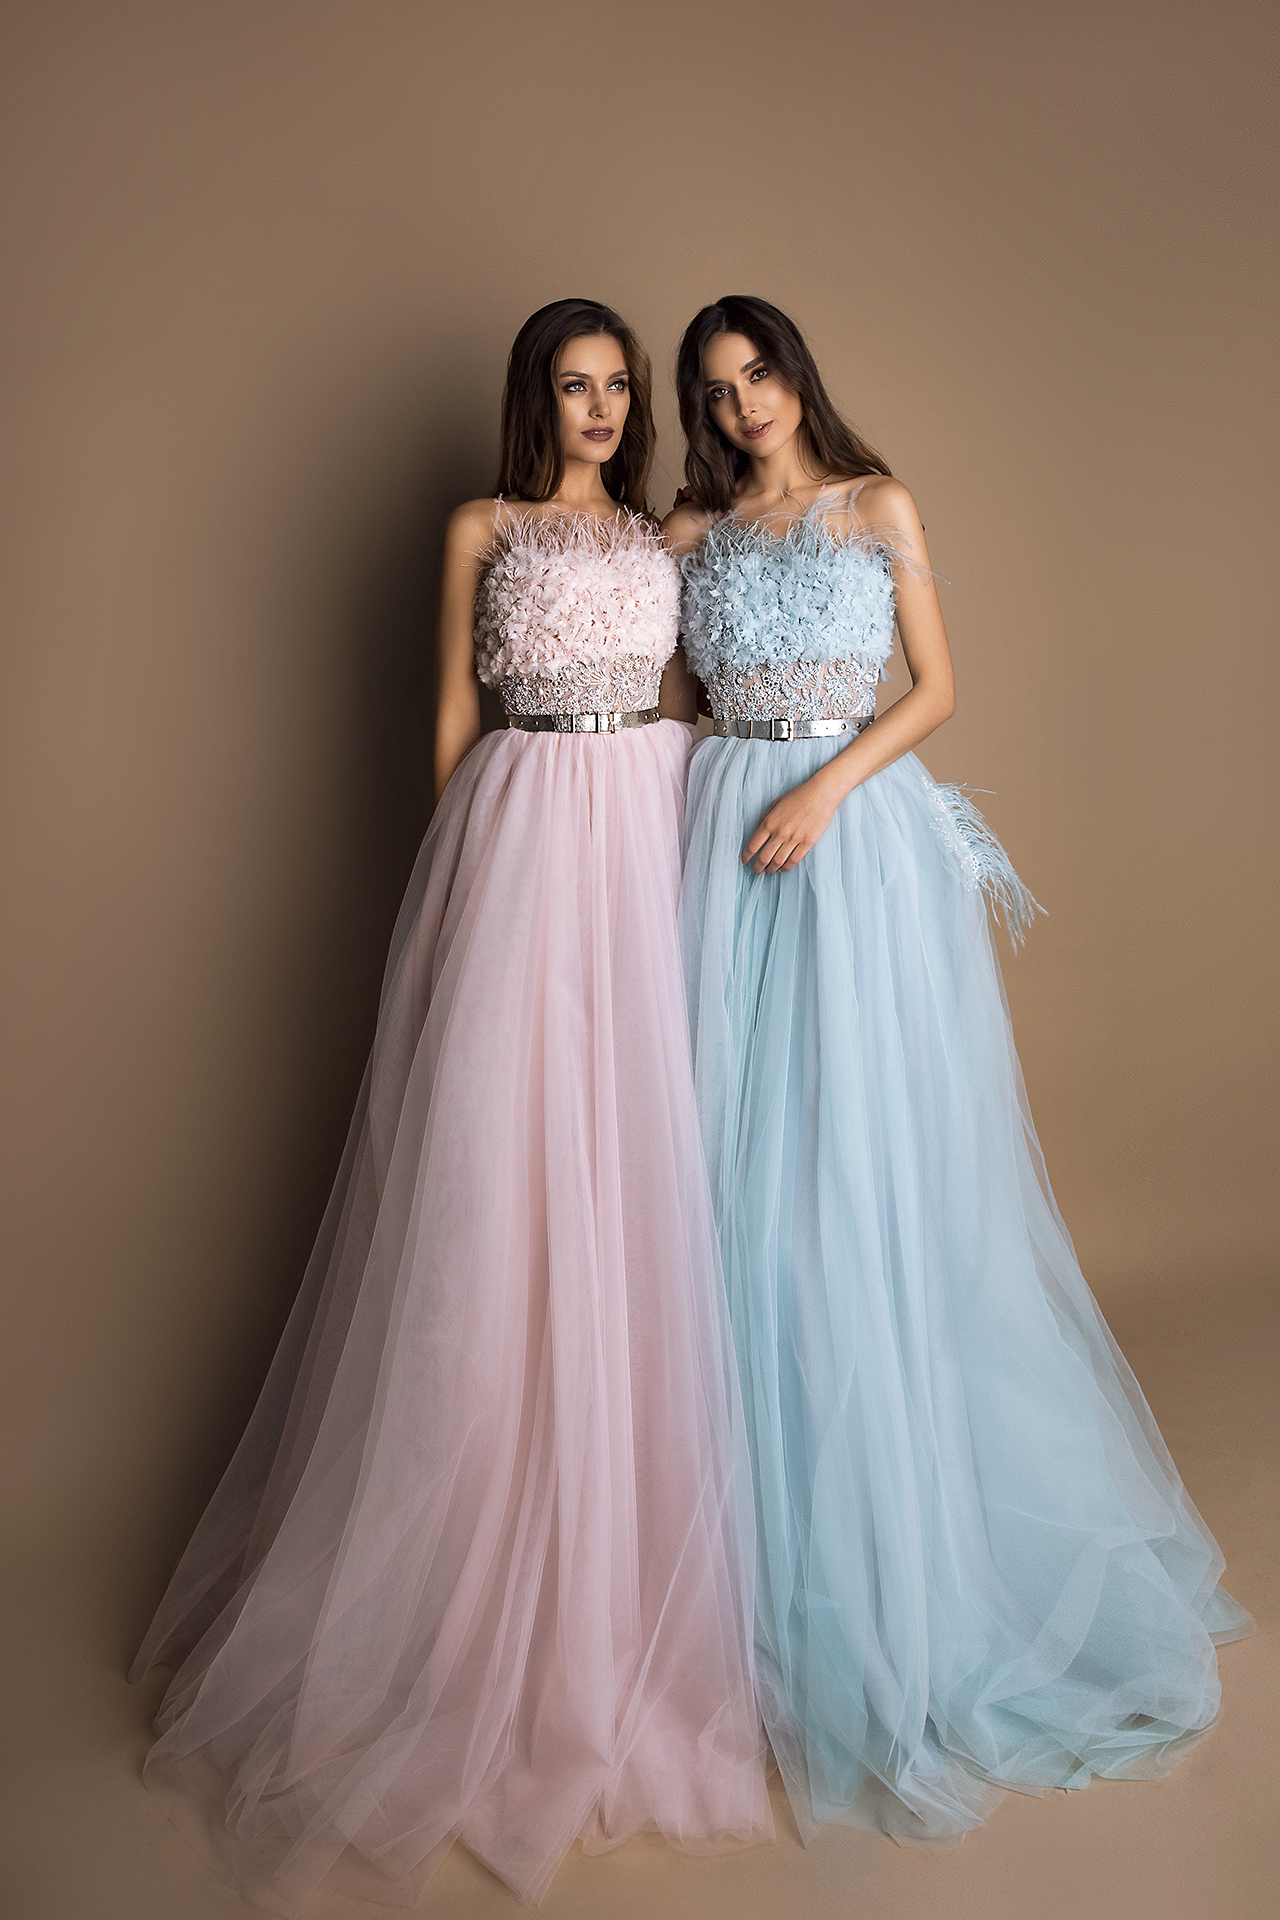 Evening Dresses 1543 Silhouette  A Line  Color  Pink  Blue  Neckline  Straight  Sleeves  Sleeveless  Train  No train